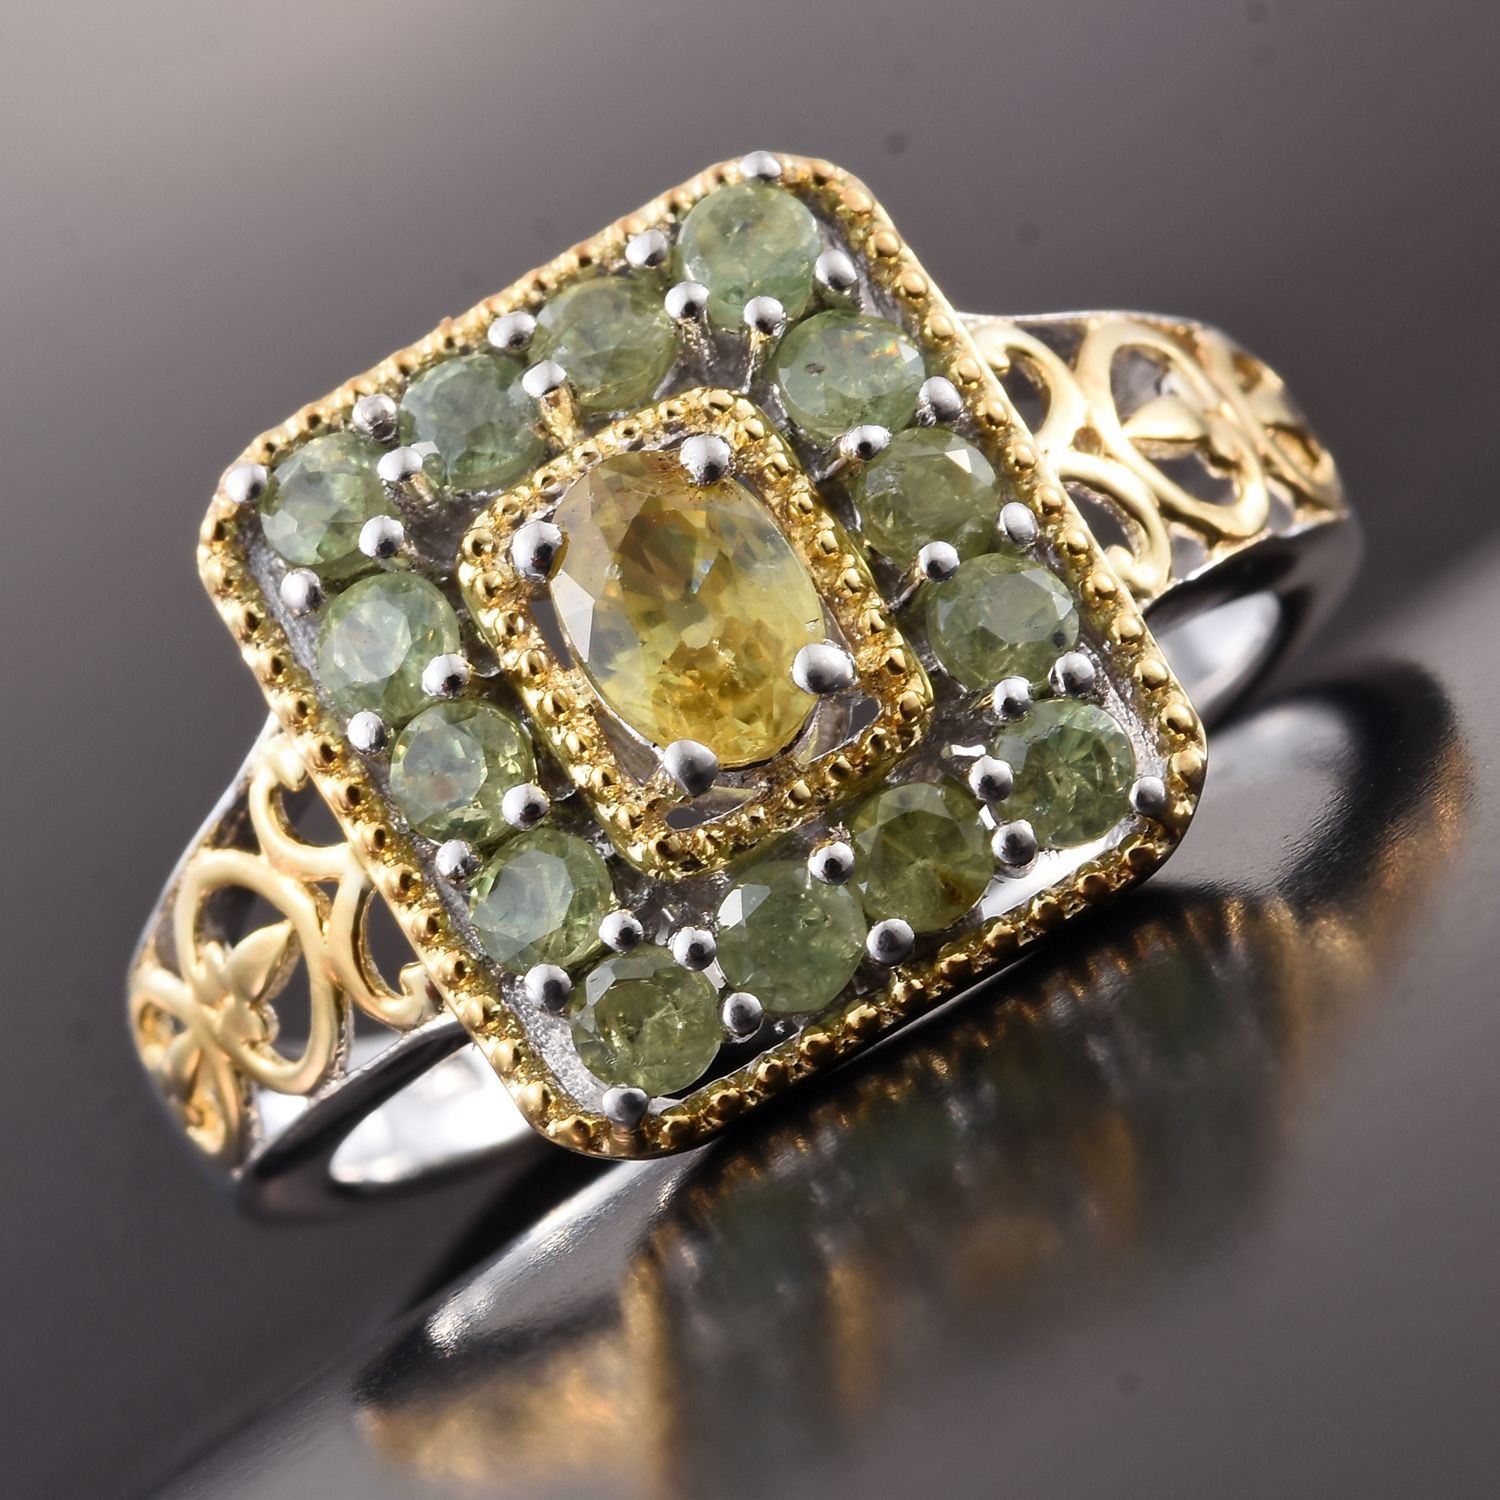 rings of carats mine pin ring from belmont emerald rare with a scavia sphene